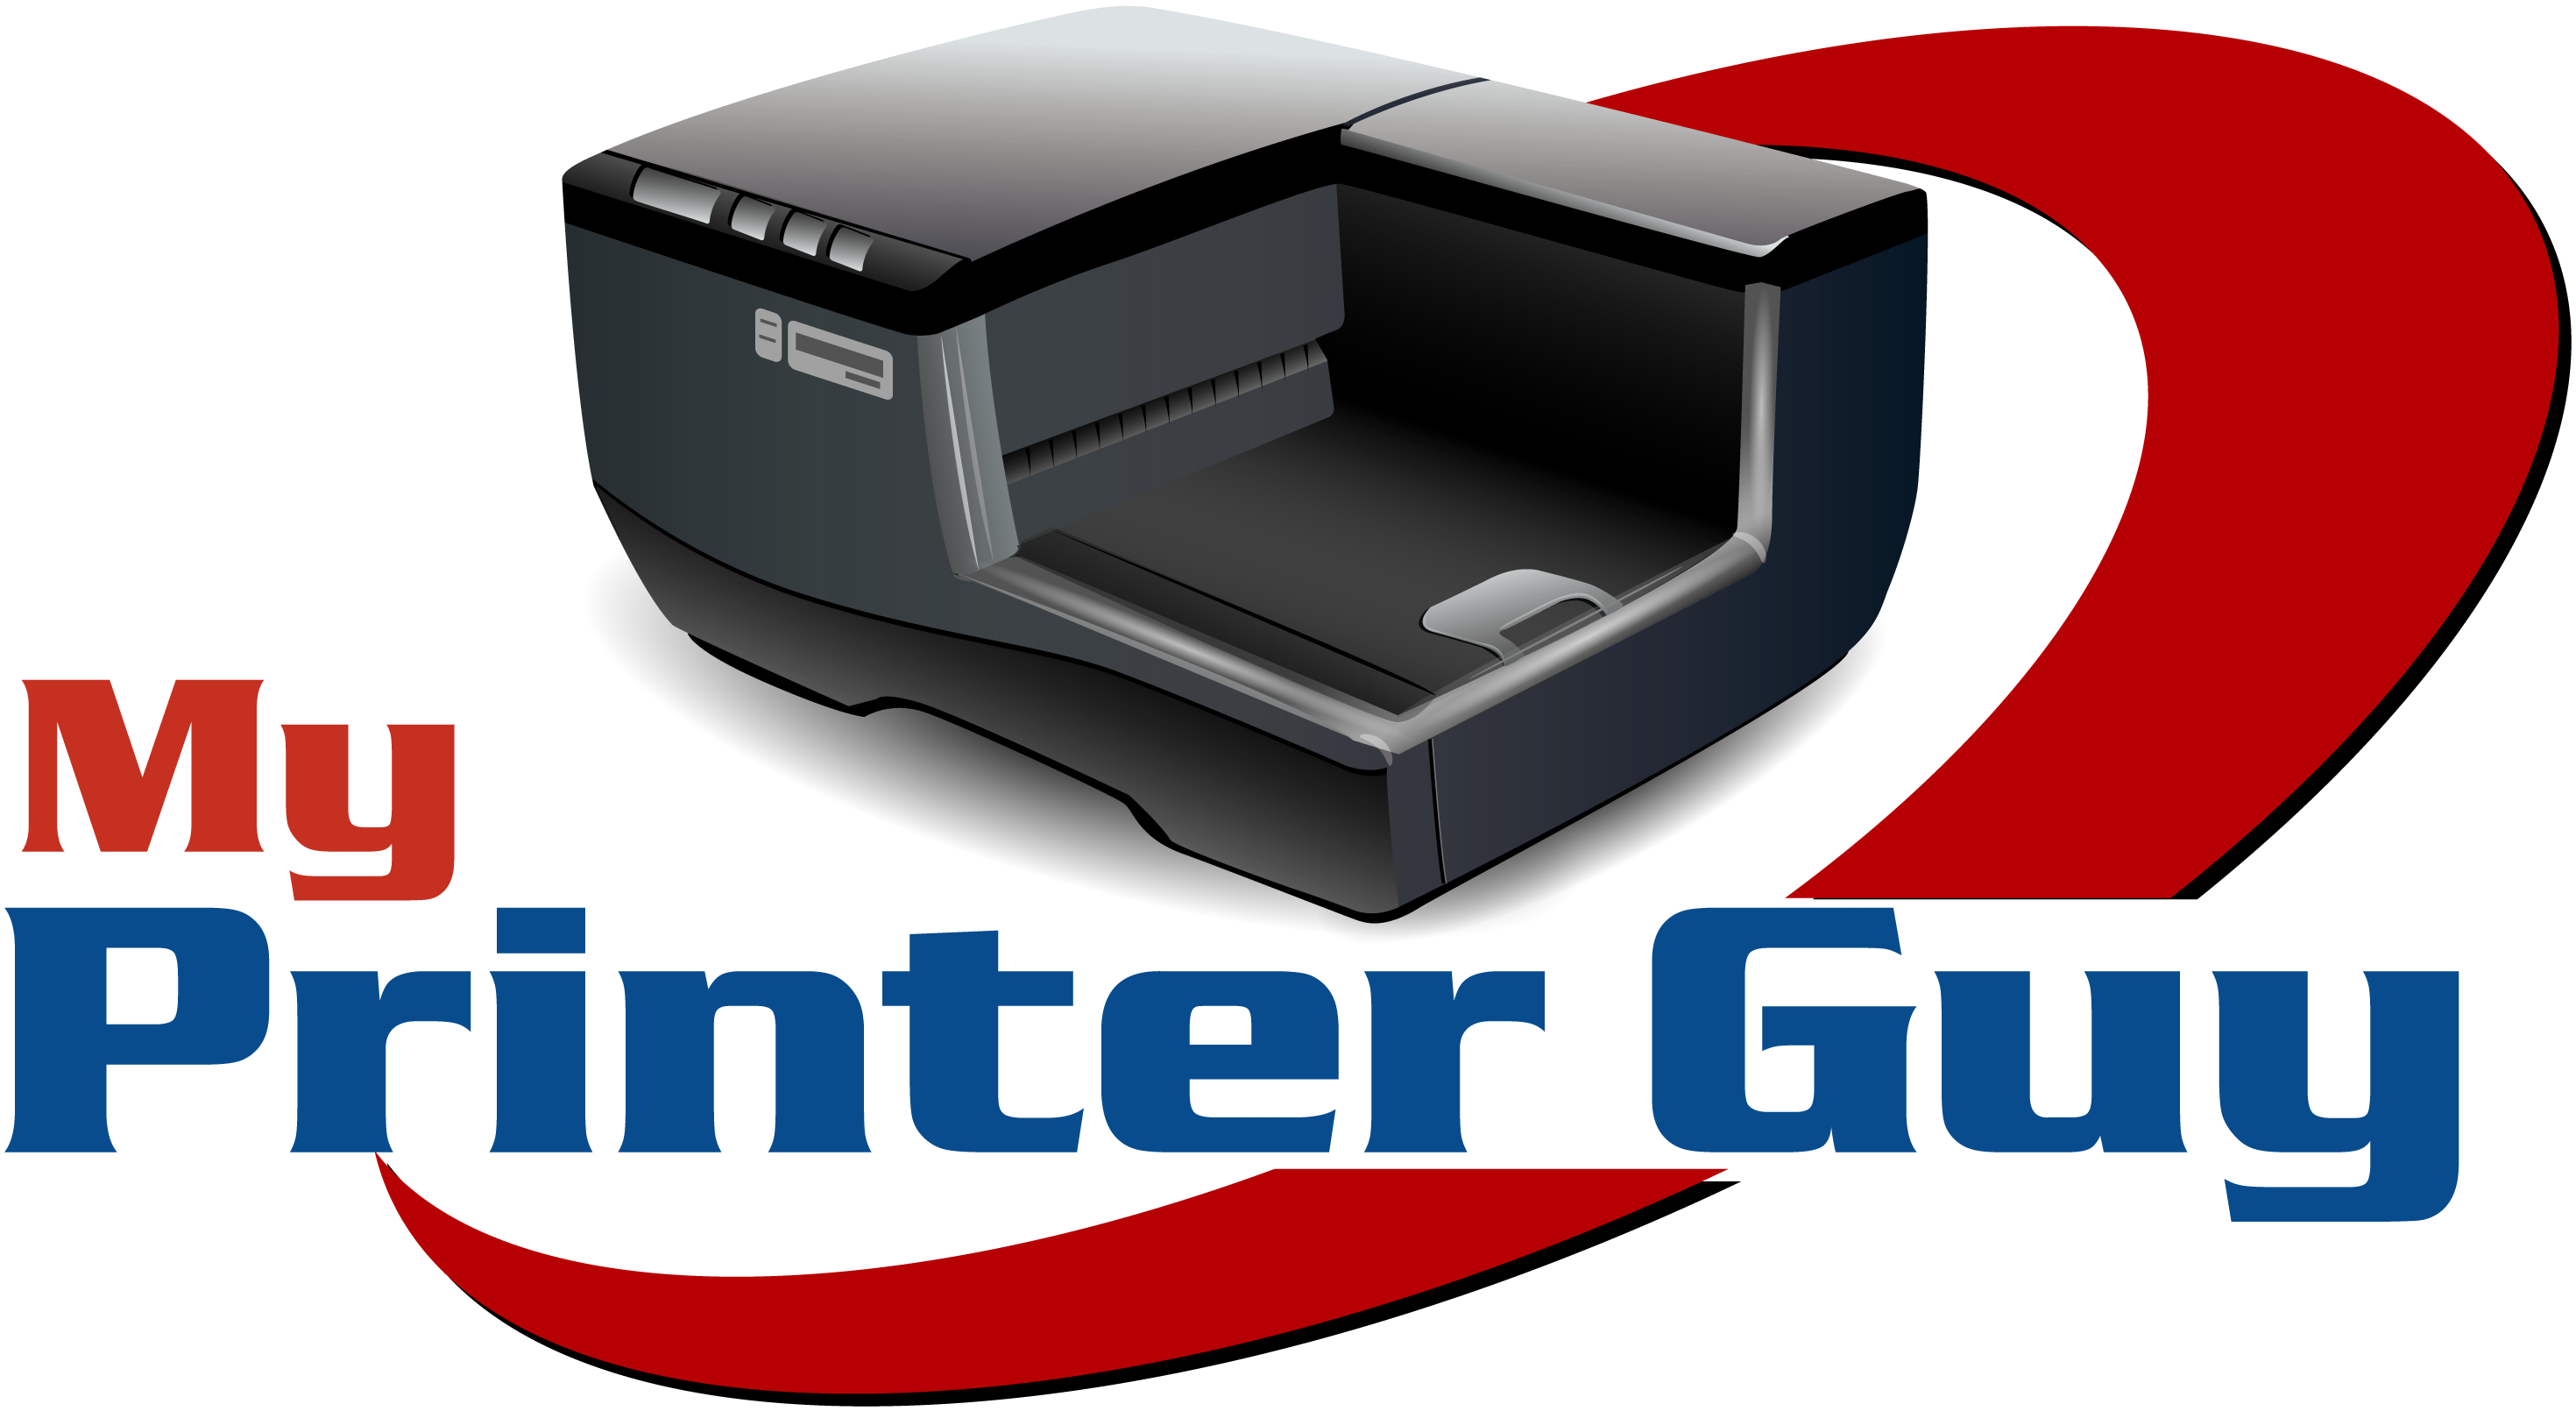 printer guys Printer copier guys offers sales through outright purchase, lease or rental and copier repair service of printers and copiers including multifunction and high-volume production machines with print speed for up to 125 pages-per-minute we are a sharp agent.